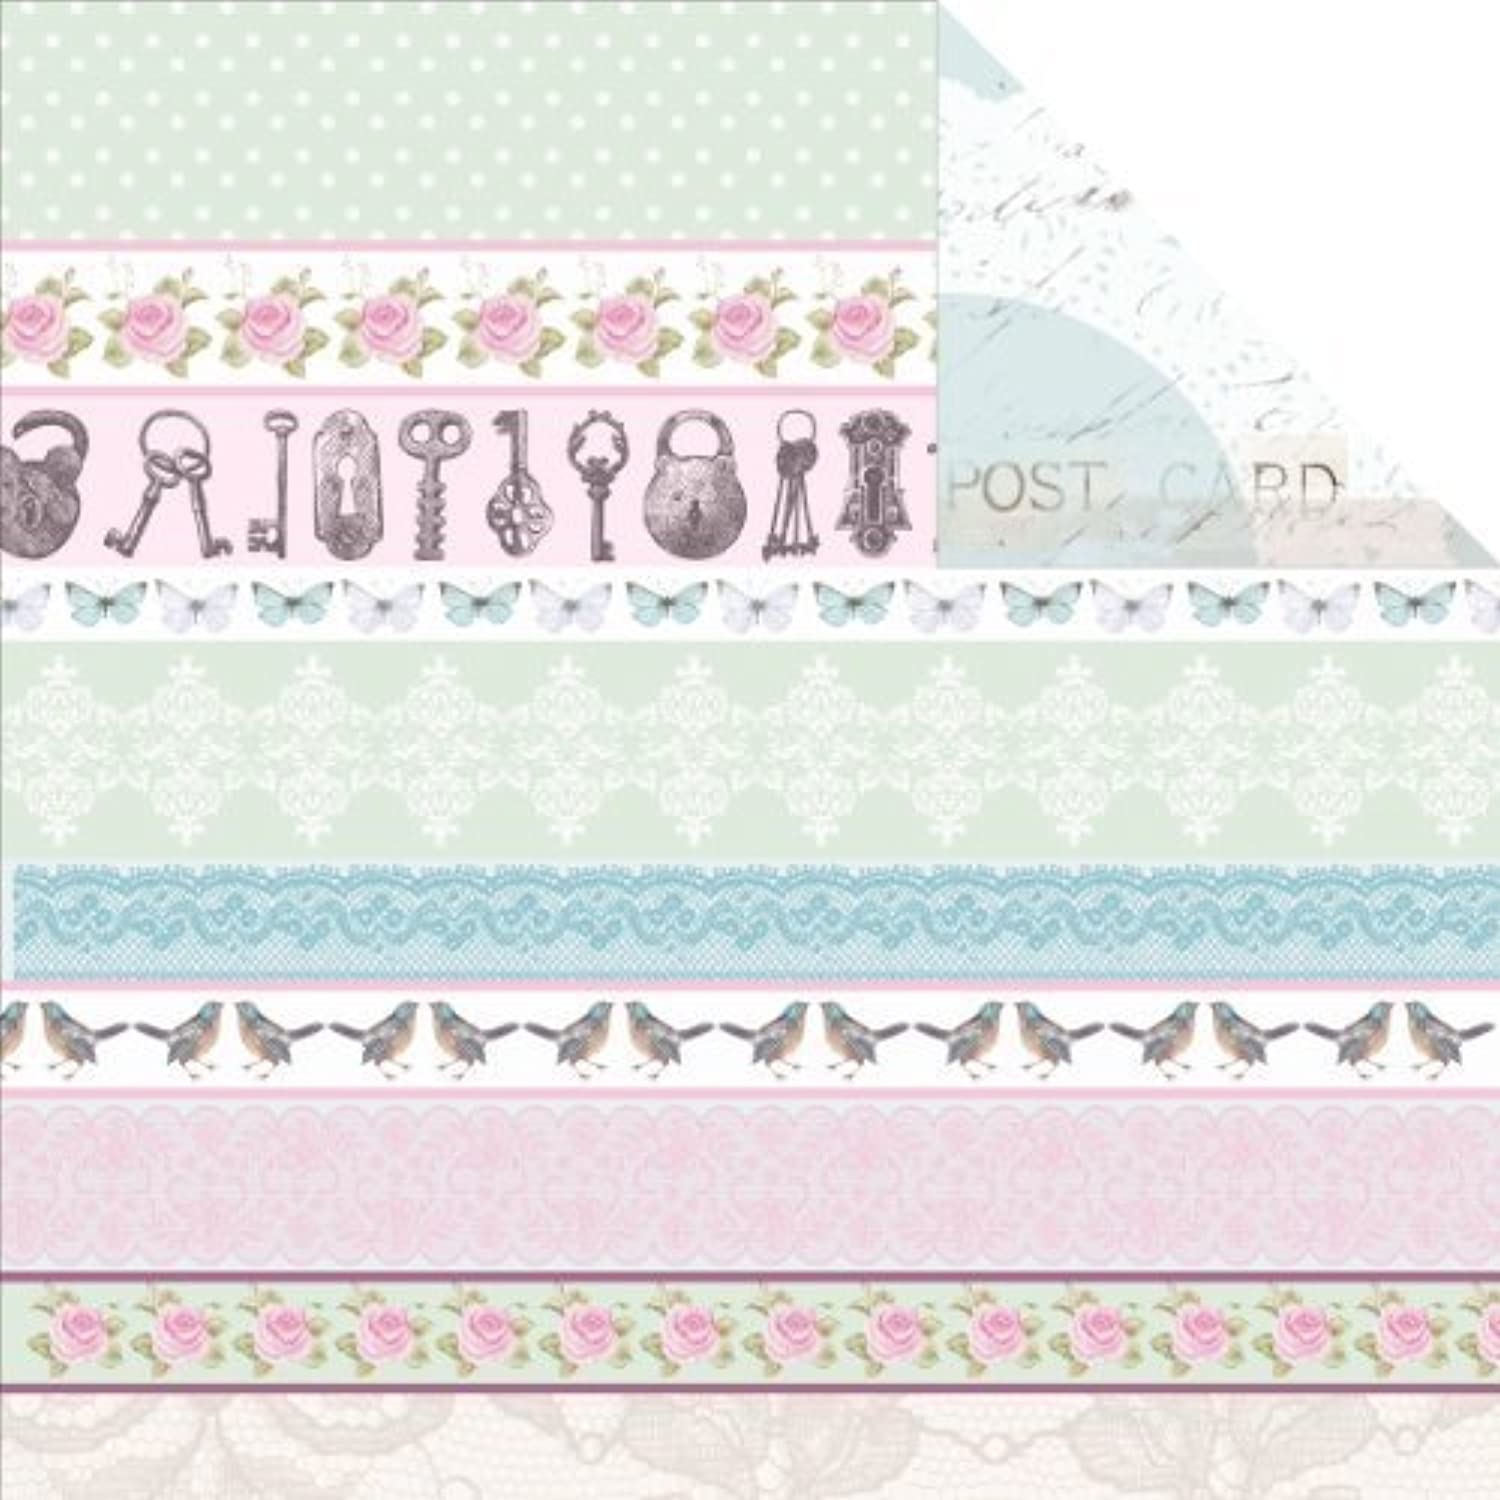 True Romance Double-Sided Cardstock 12 X12 X12 X12 -Affection 20 per pack by Notions - In Network B017RR1Z1Q   | Zuverlässige Qualität